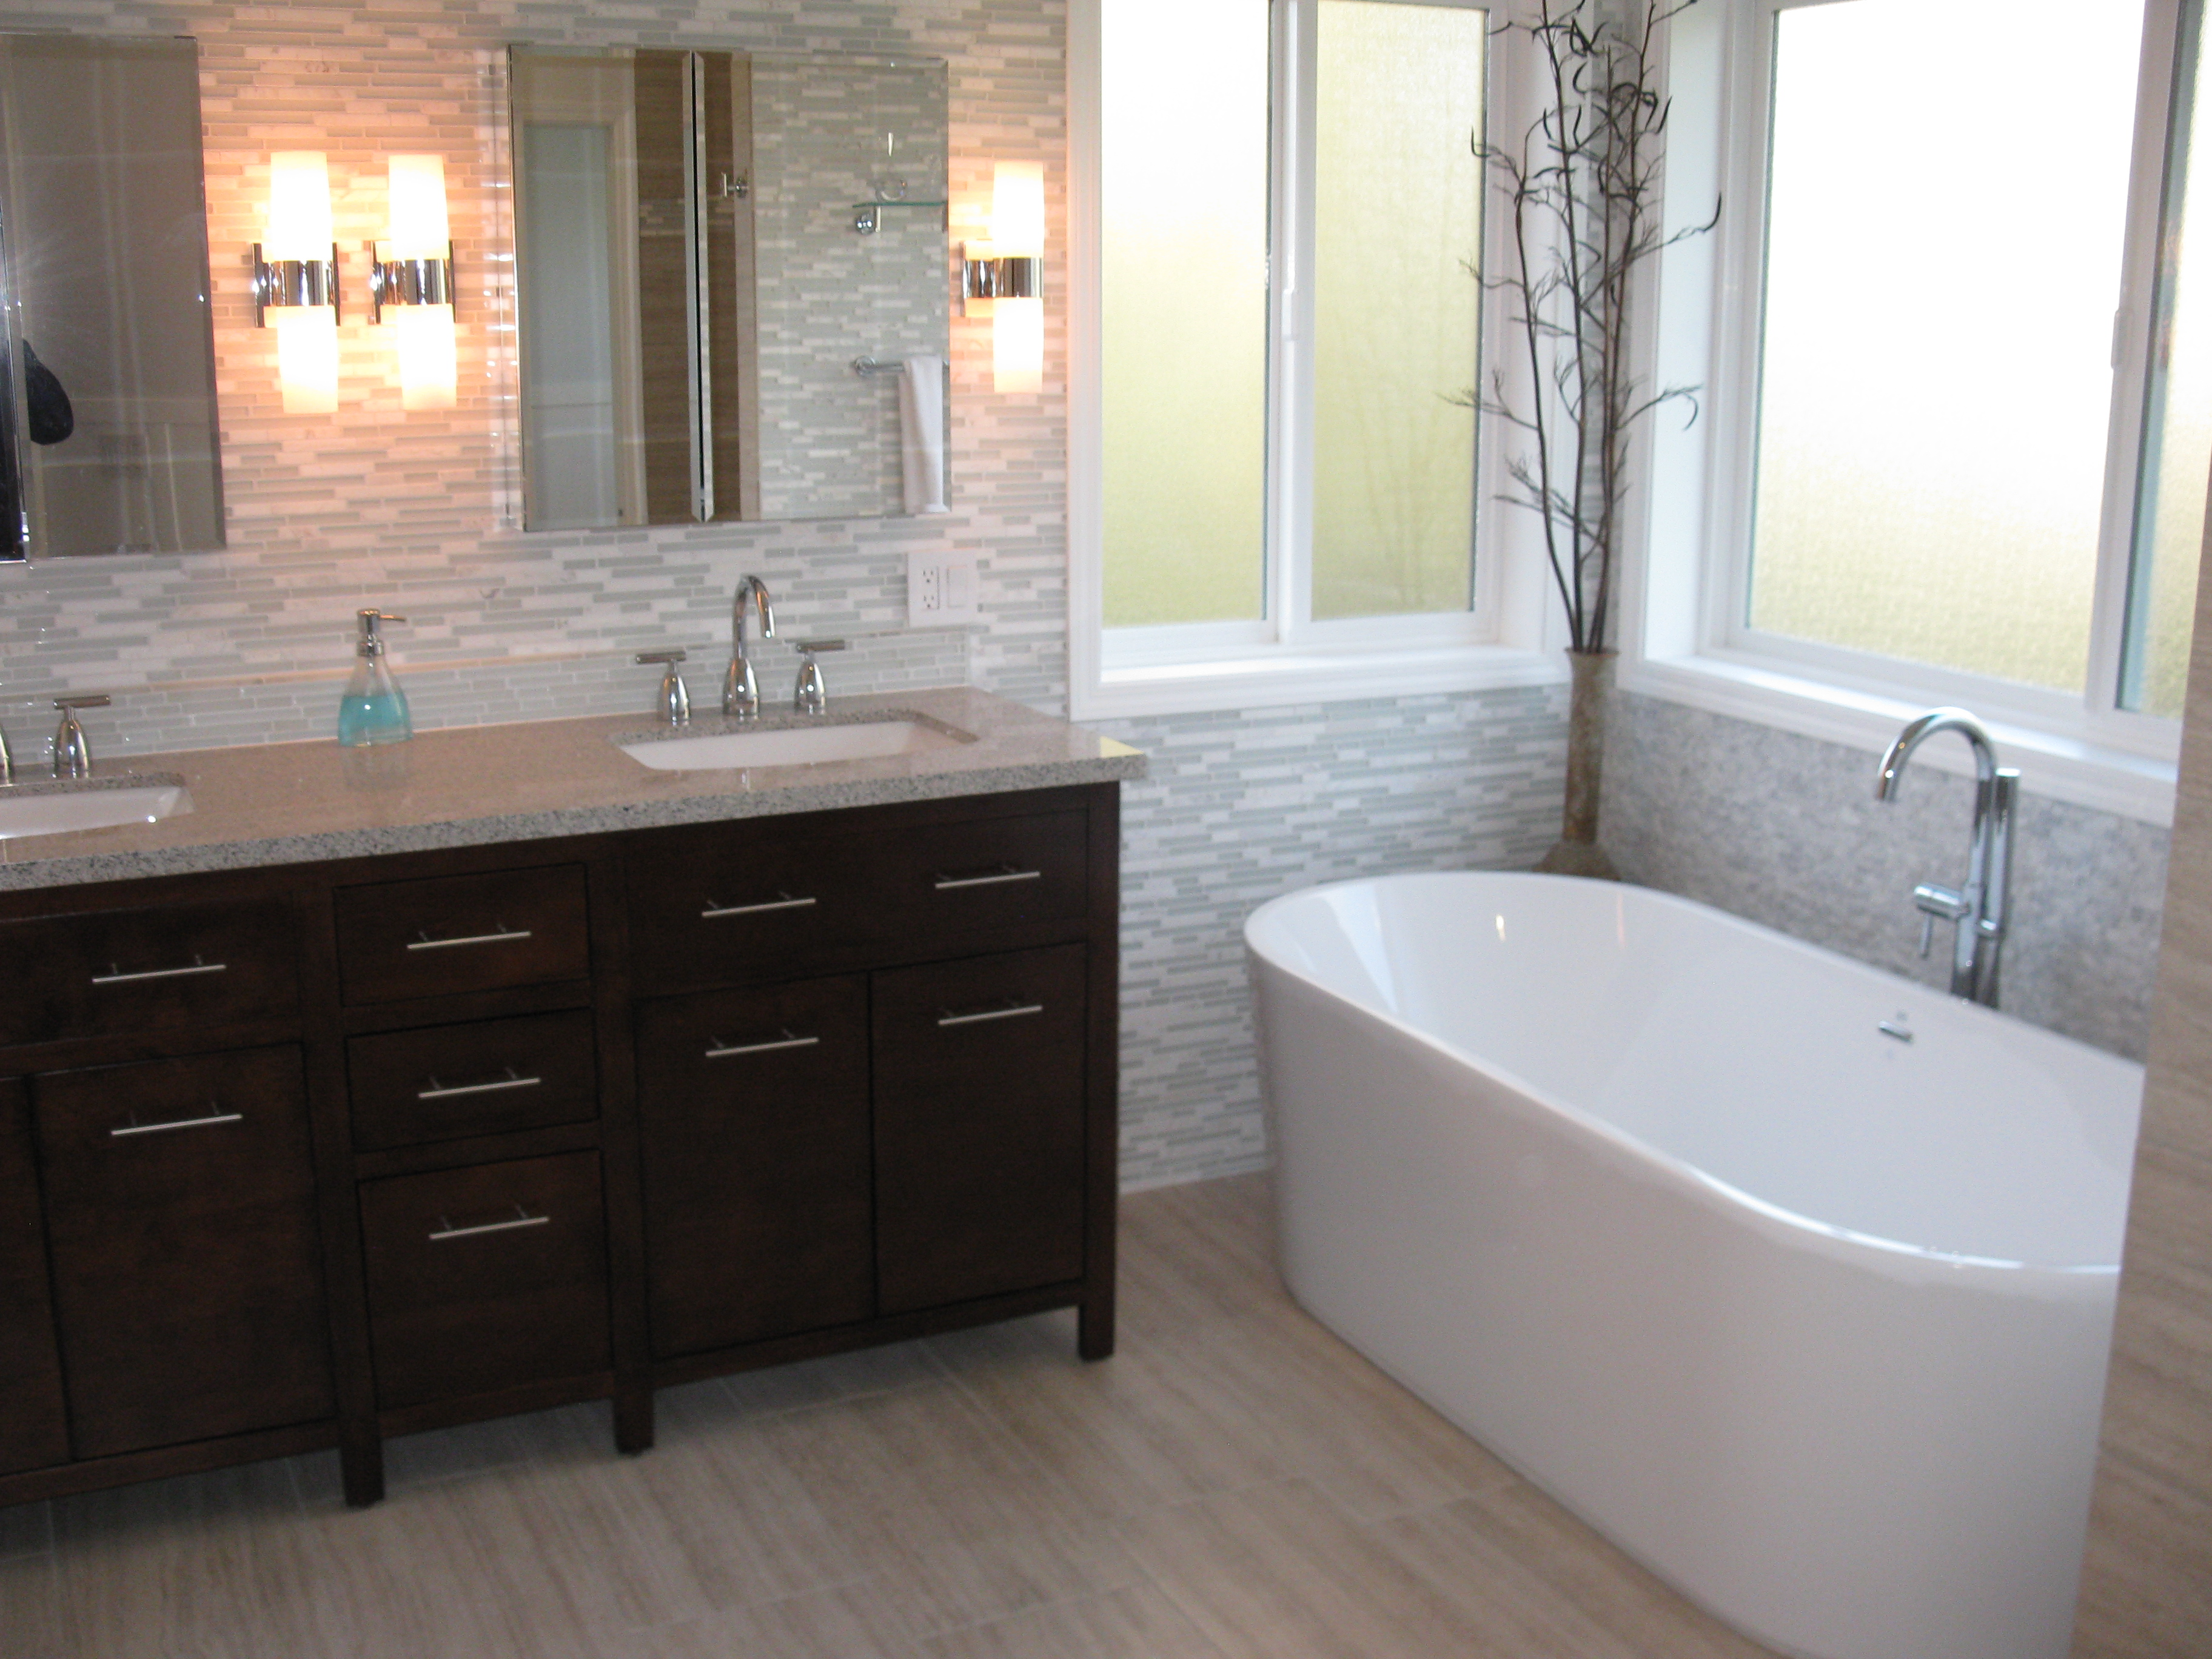 Creative Tile and Remodel - Bathroom